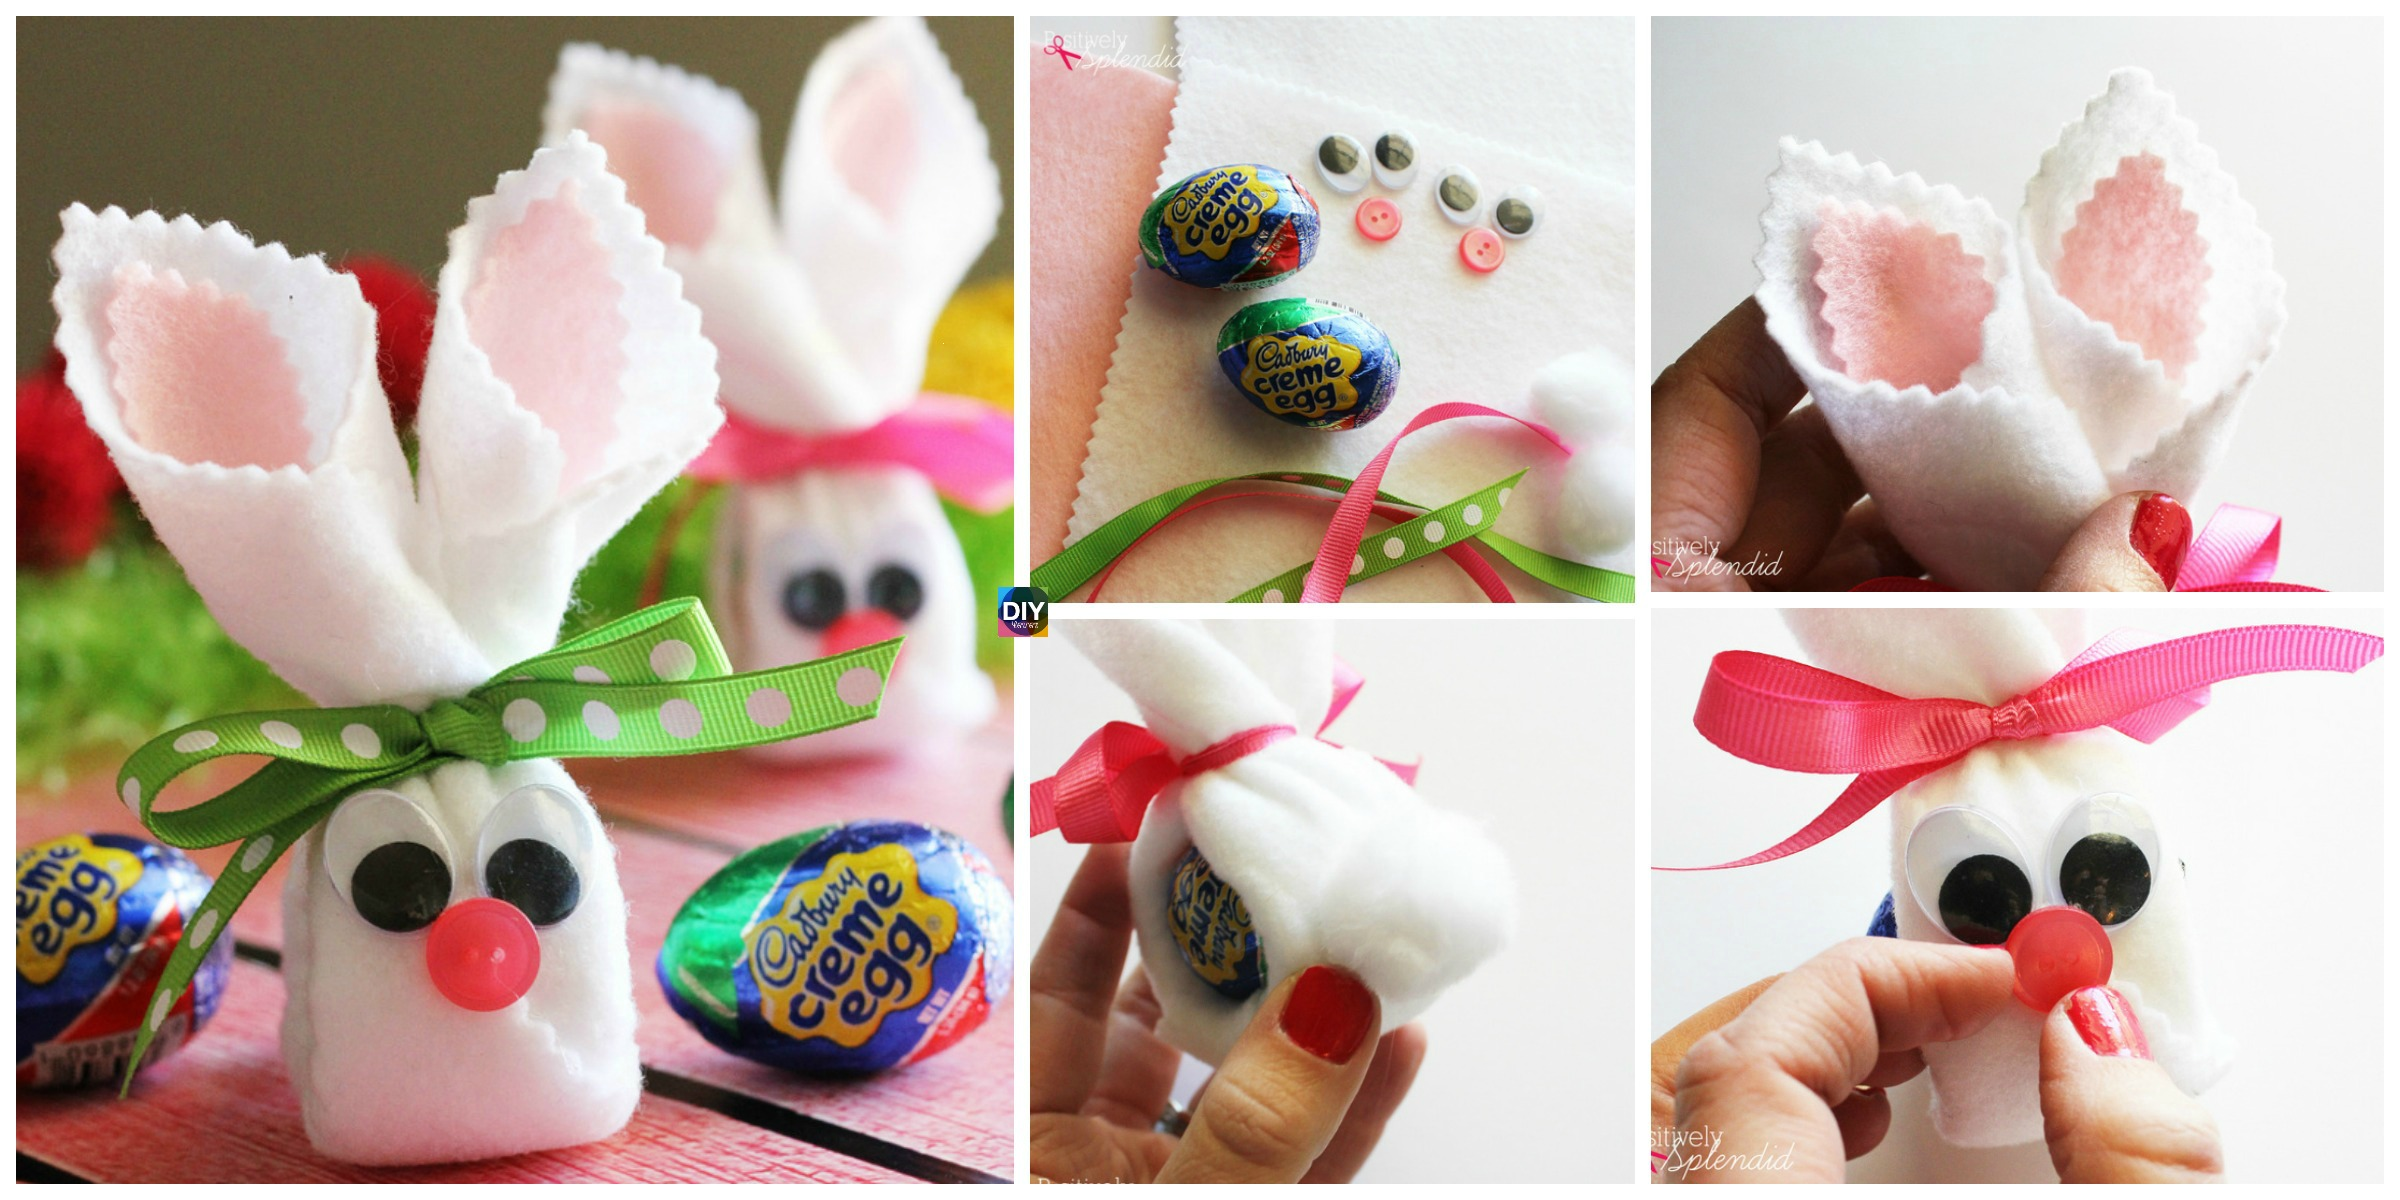 Cute DIY Egg Easter Bunnies Tutorial